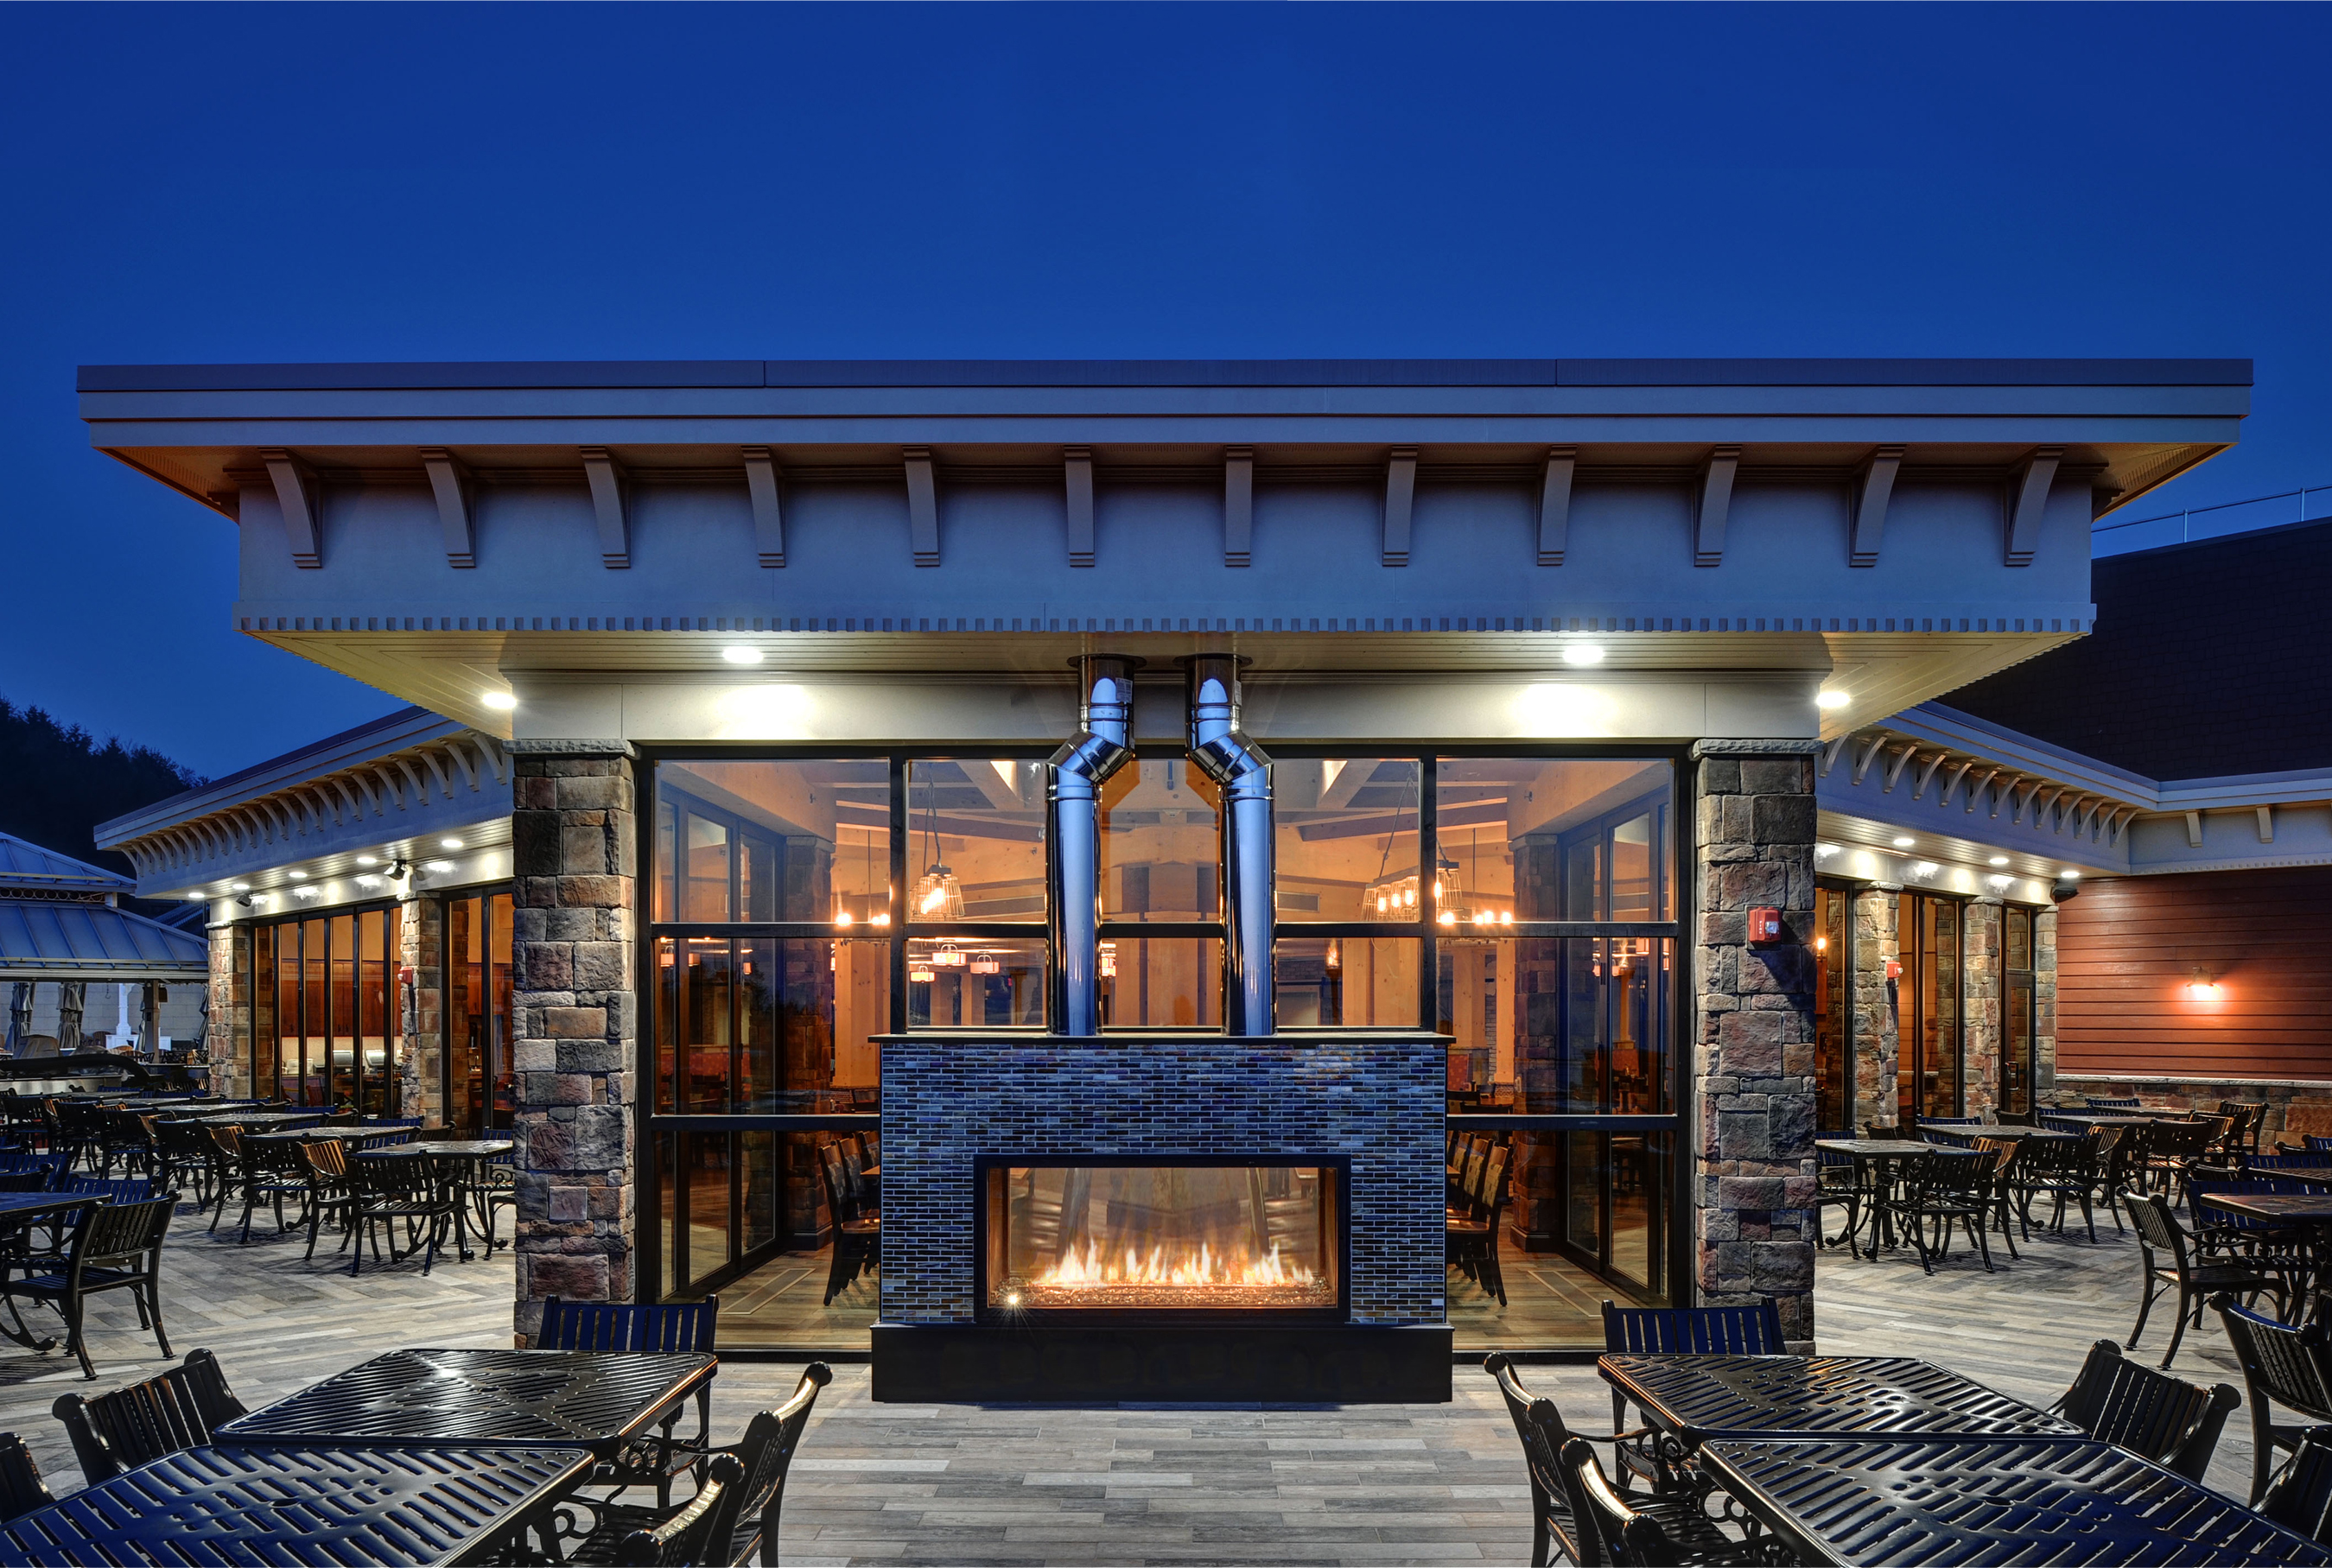 Custom Commercial Gas Fireplace Manufacturer